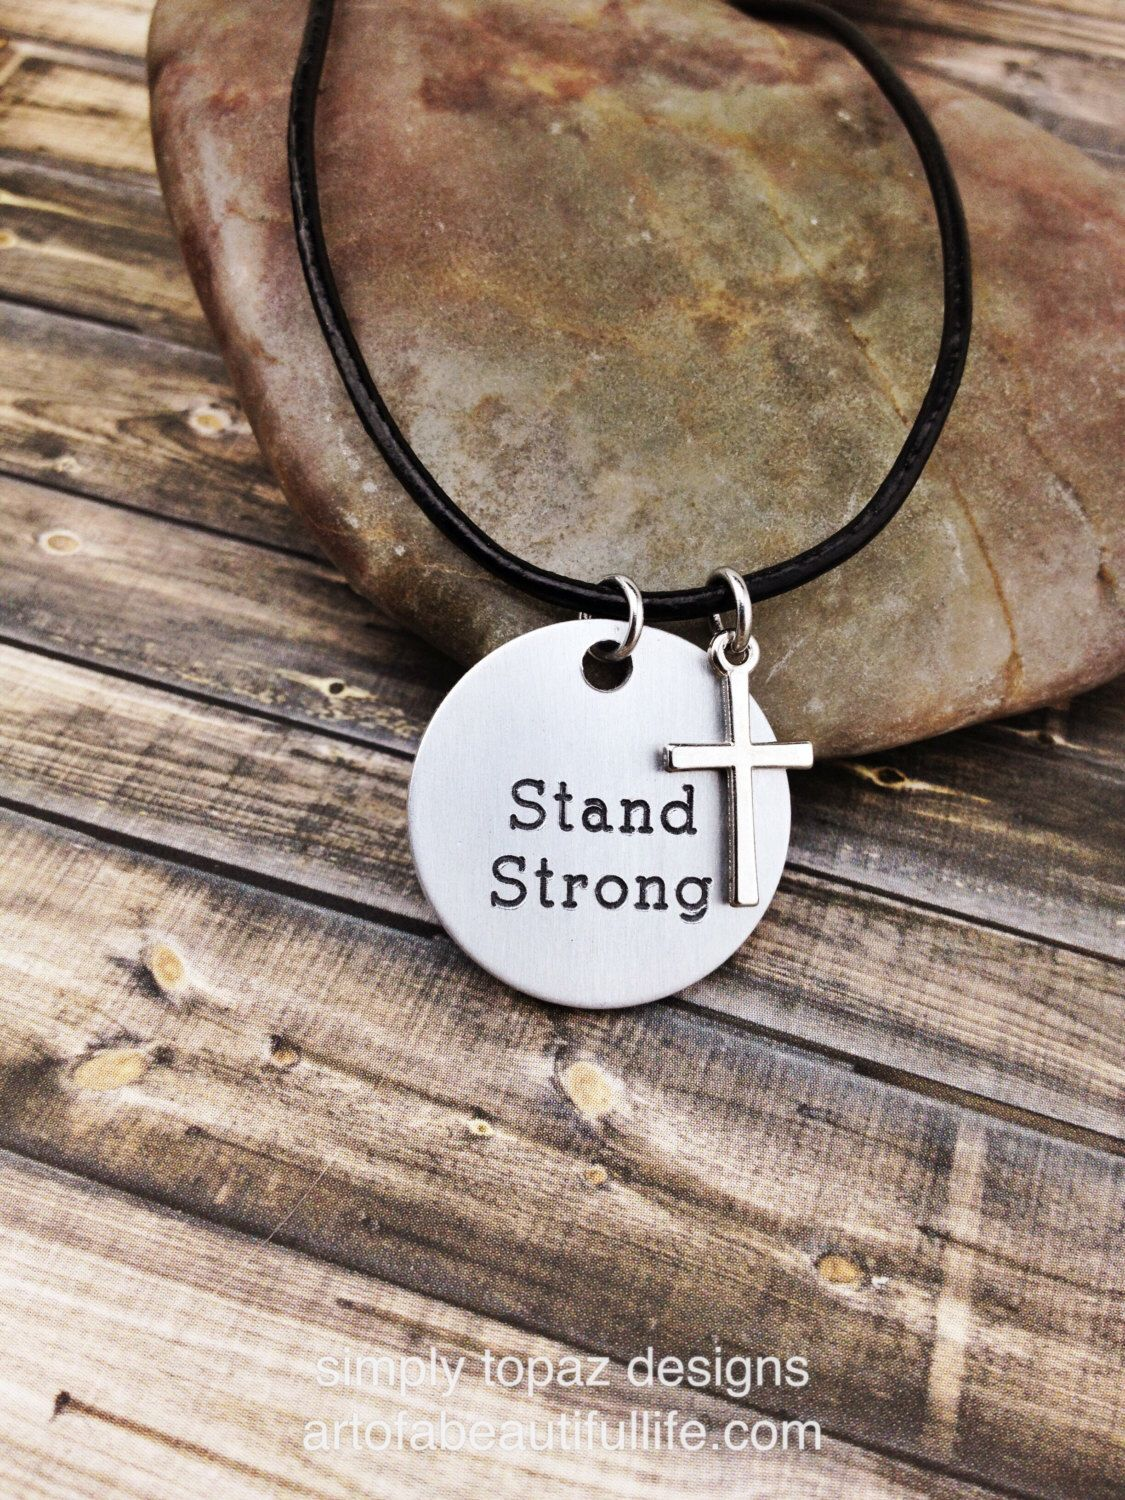 Stand strong.   Christian necklace   https://www.etsy.com/listing/250670588/engraved-jewelry-christian-necklace